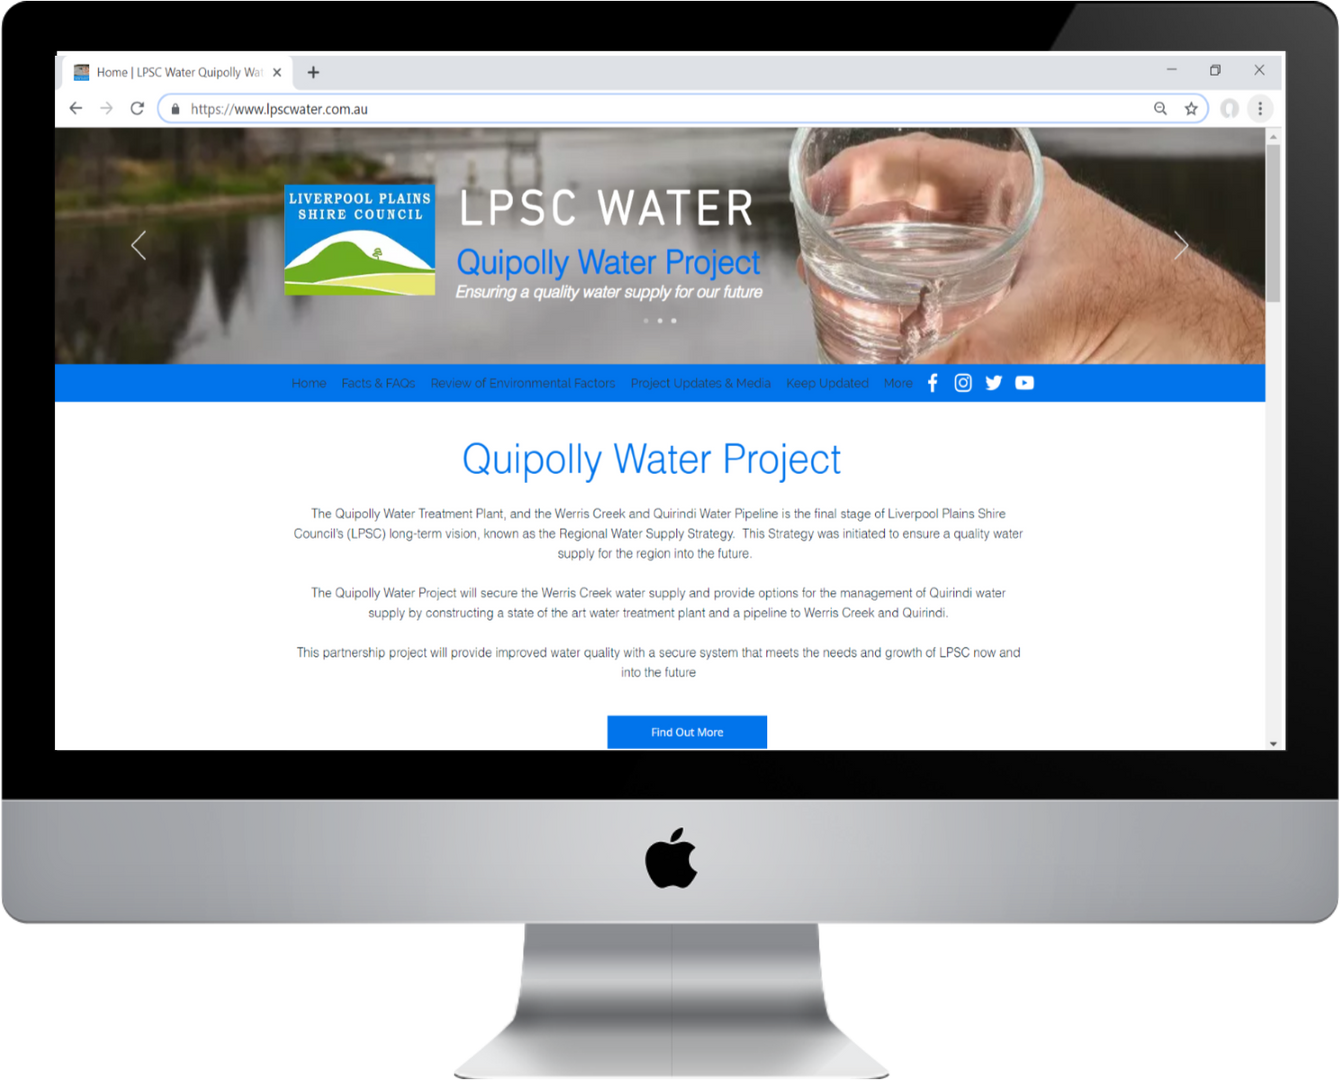 Quipolly Water Project